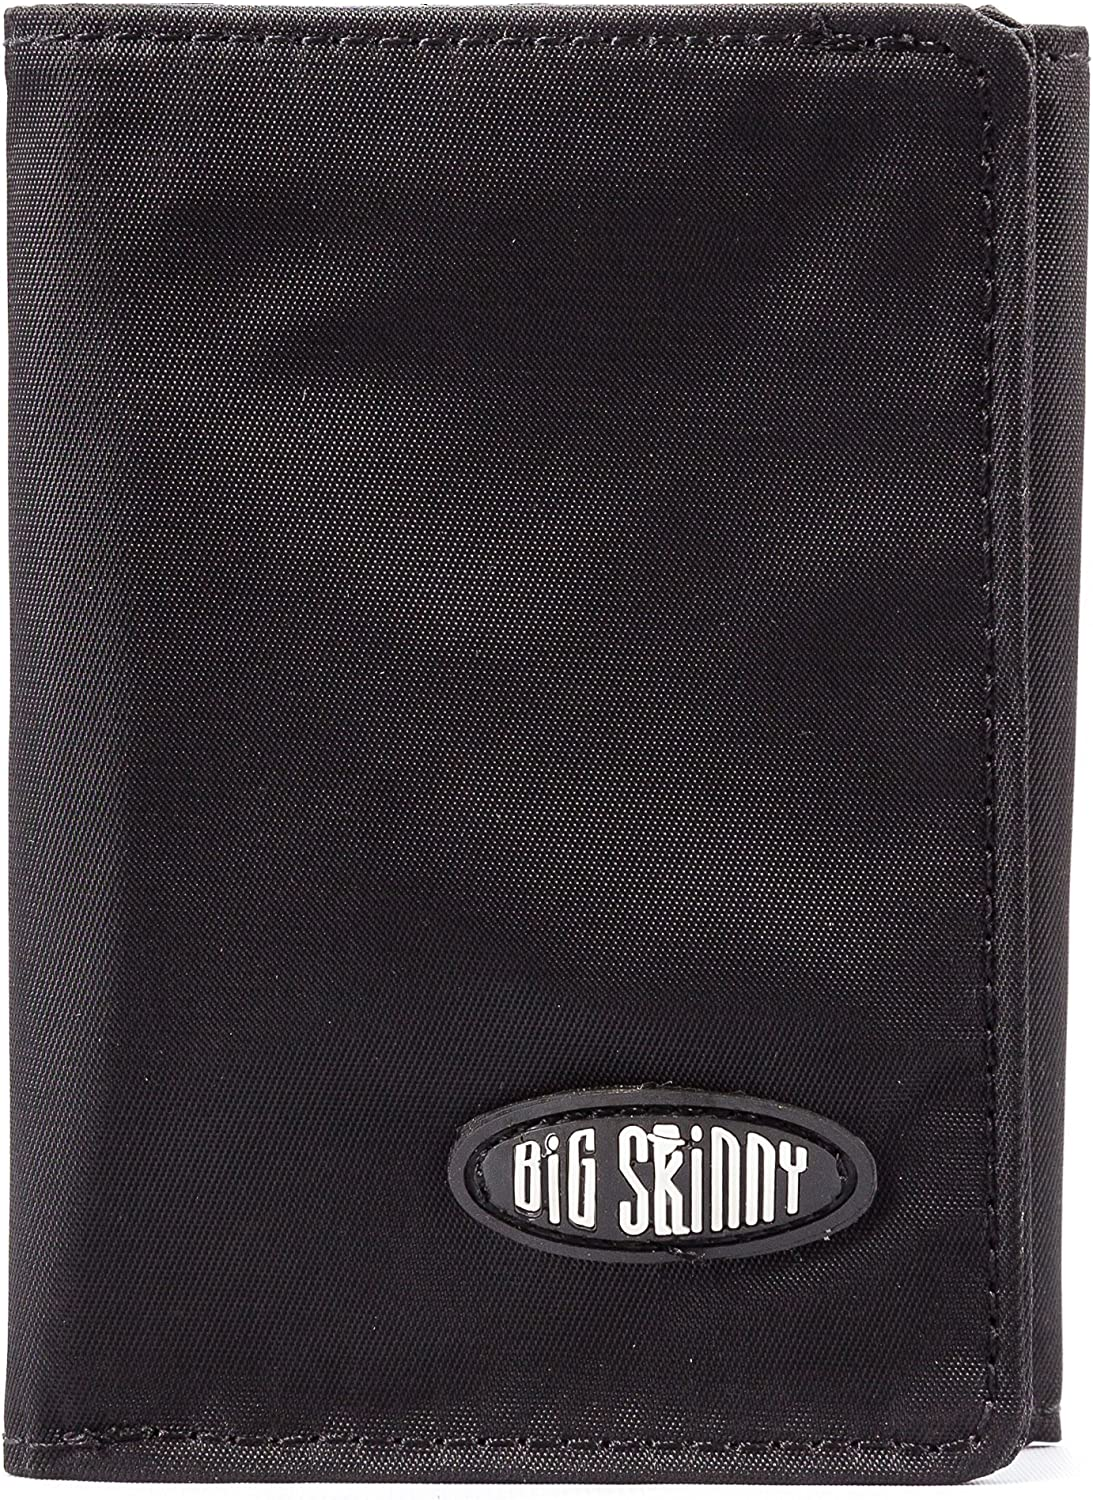 Big Skinny Mens RFID Blocking Tri-Fold Leather Slim Wallet Black Holds Up to 25 Cards